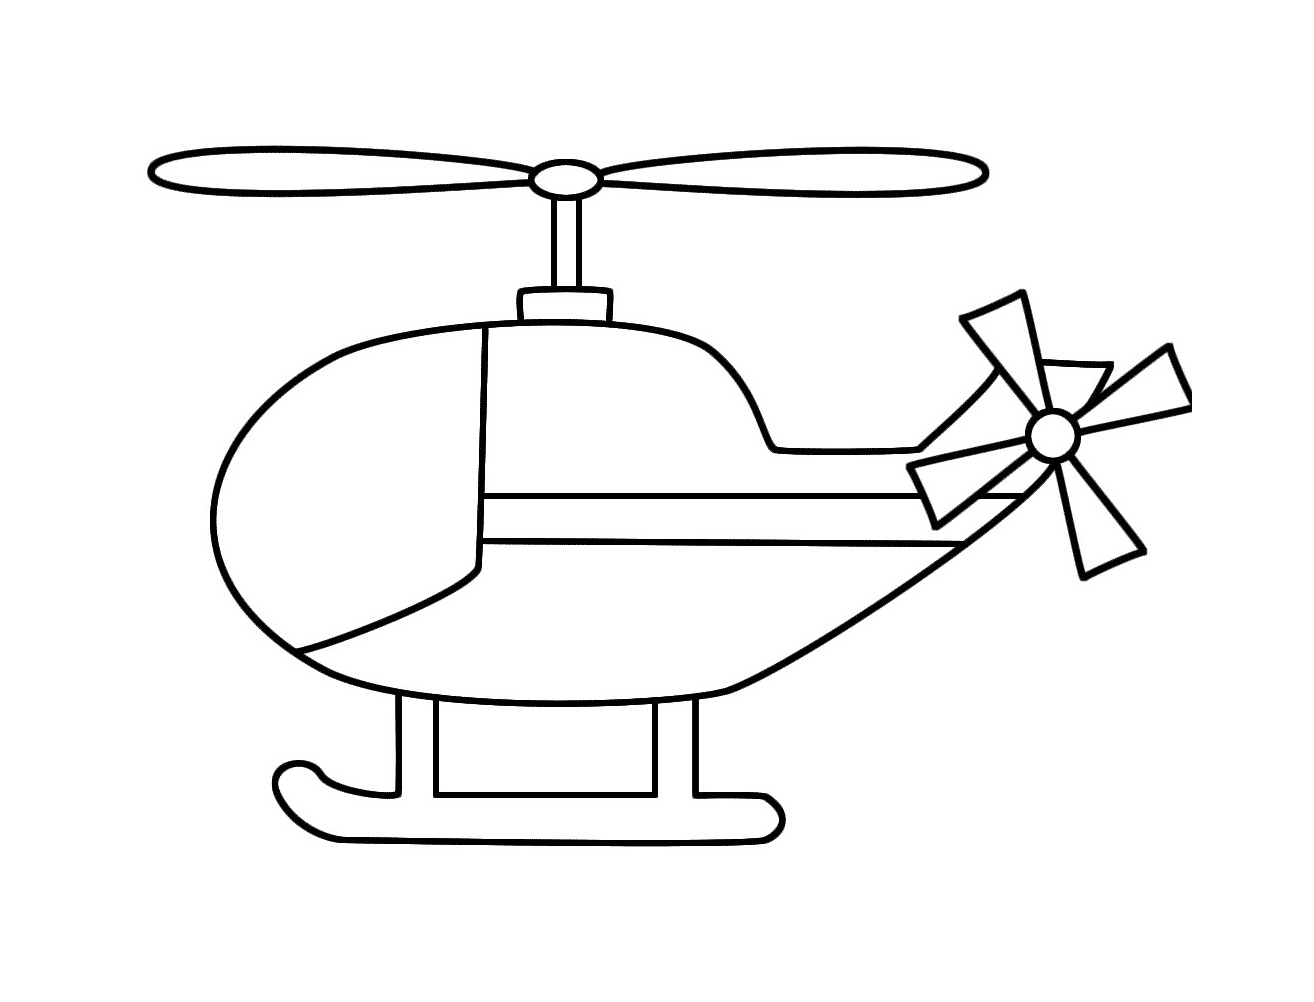 helicopter colouring pictures free printable helicopter coloring pages for kids pictures colouring helicopter